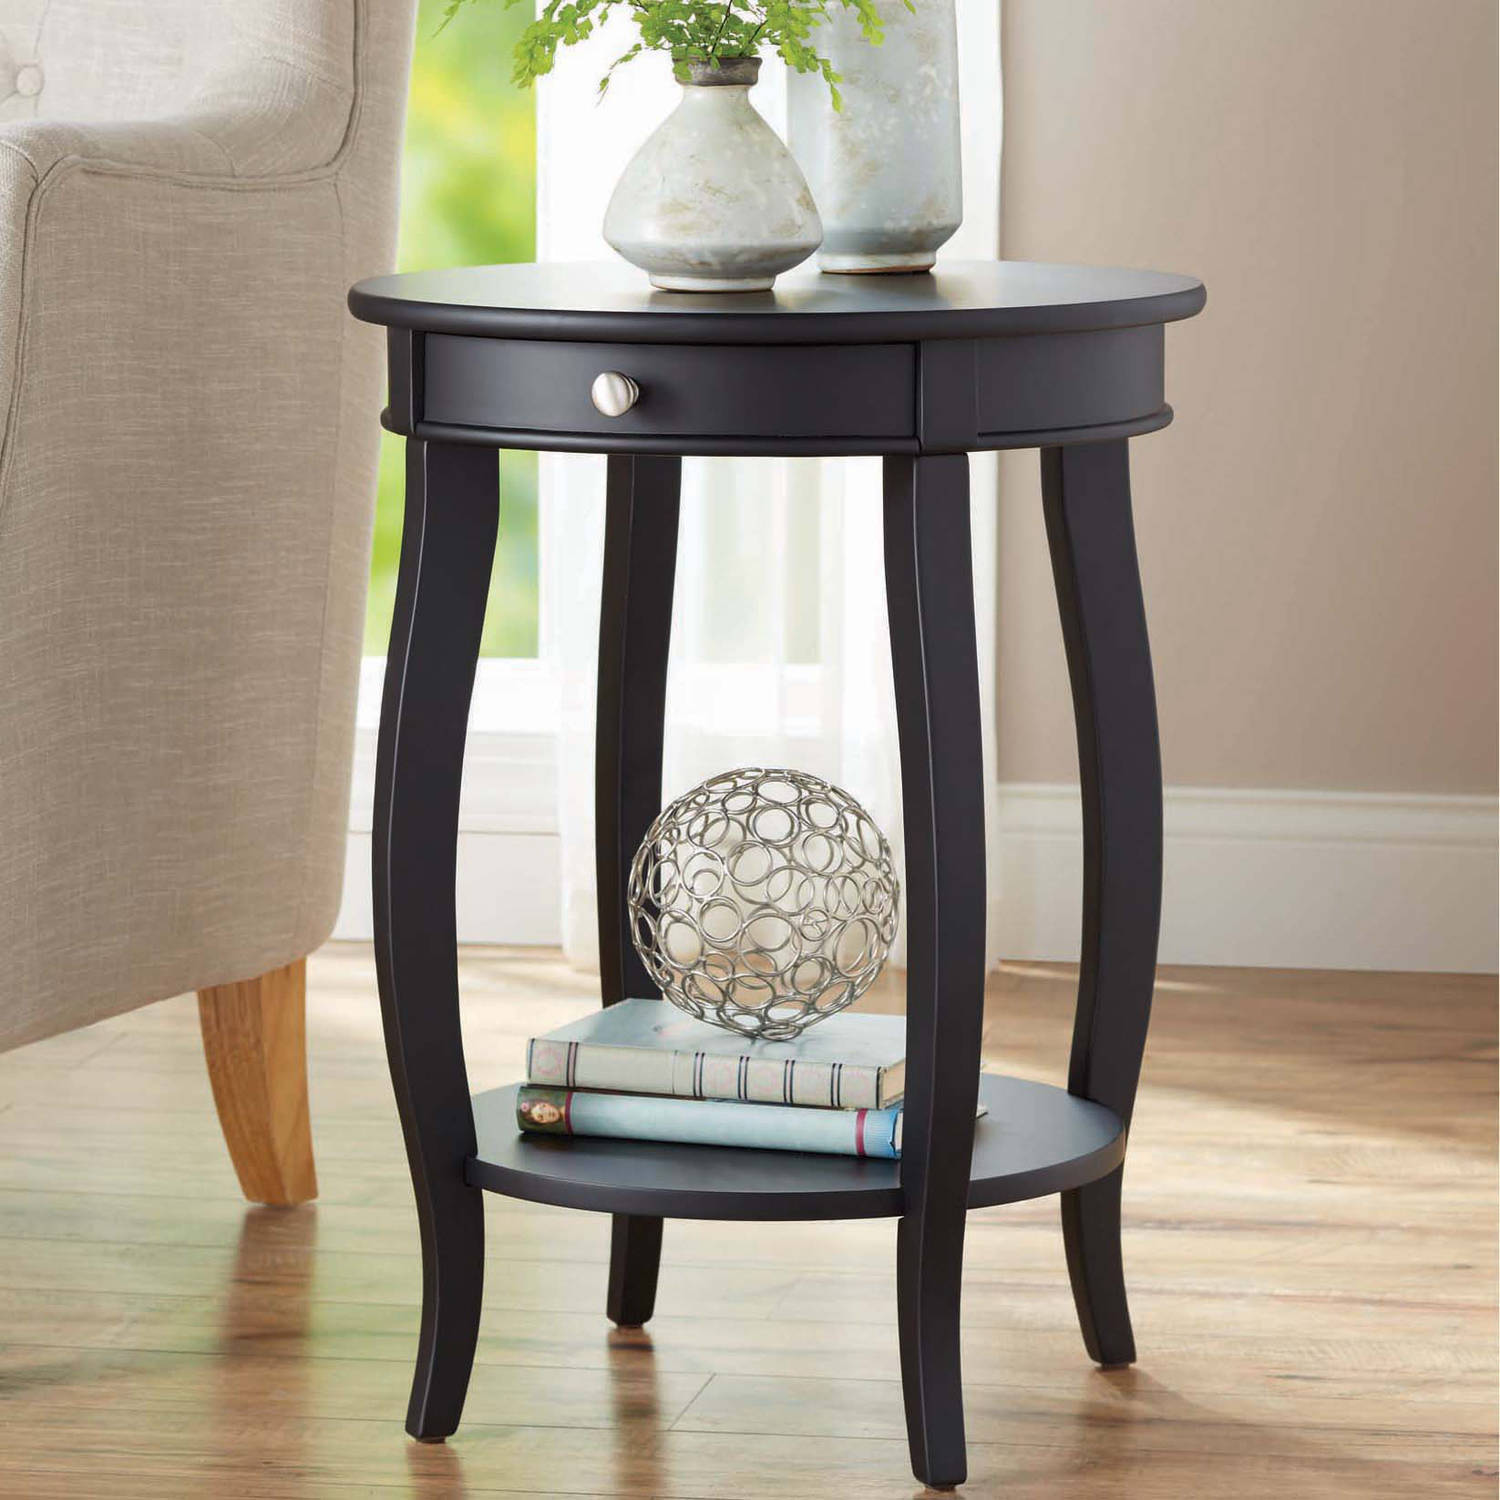 Better Homes and Gardens Round Accent Table with Drawer, Multiple Colors